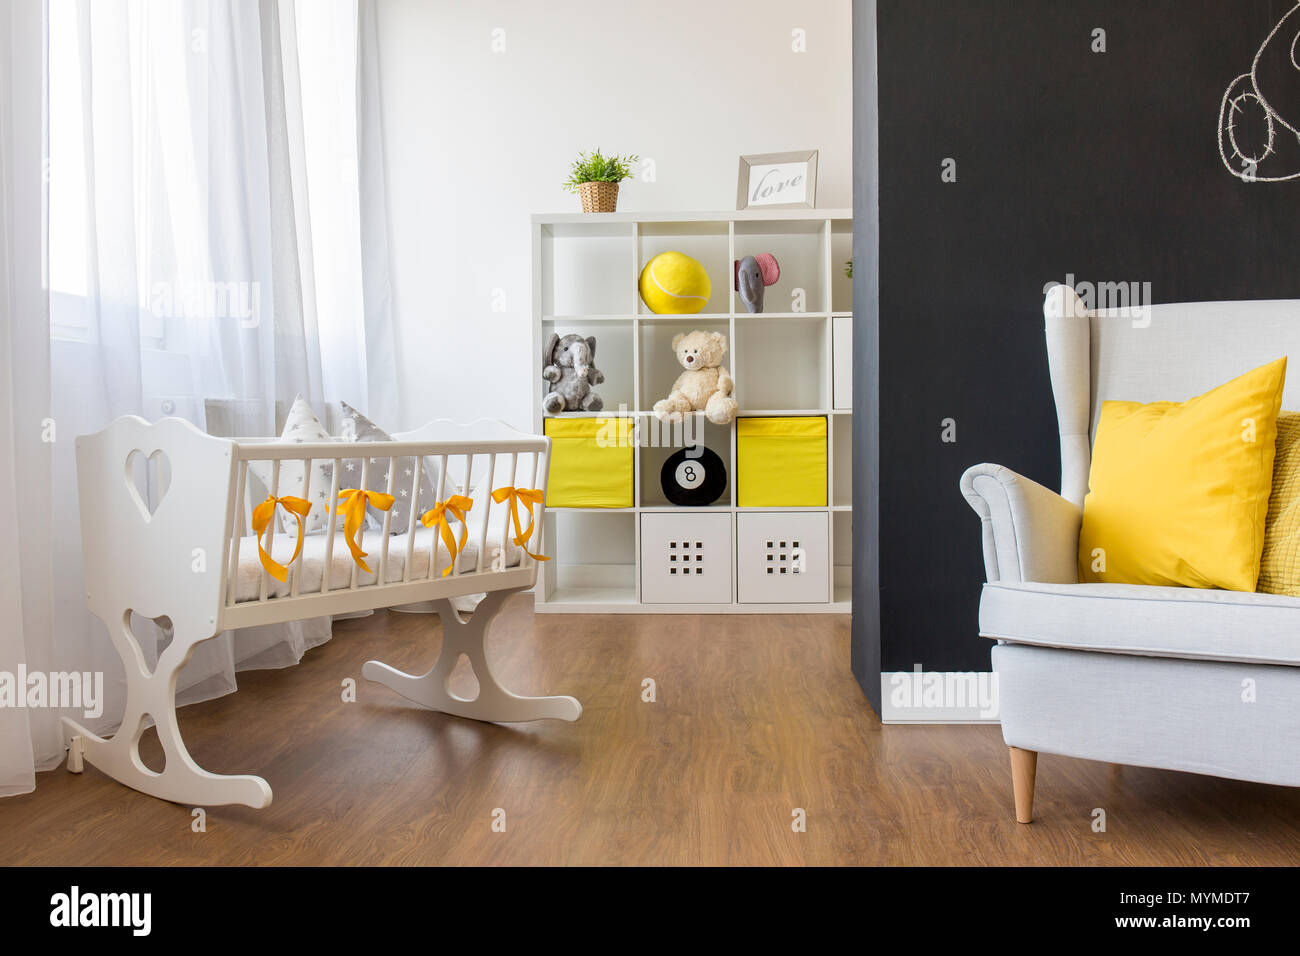 Shot of a cozy nursery room with a blackboard wall - Stock Image